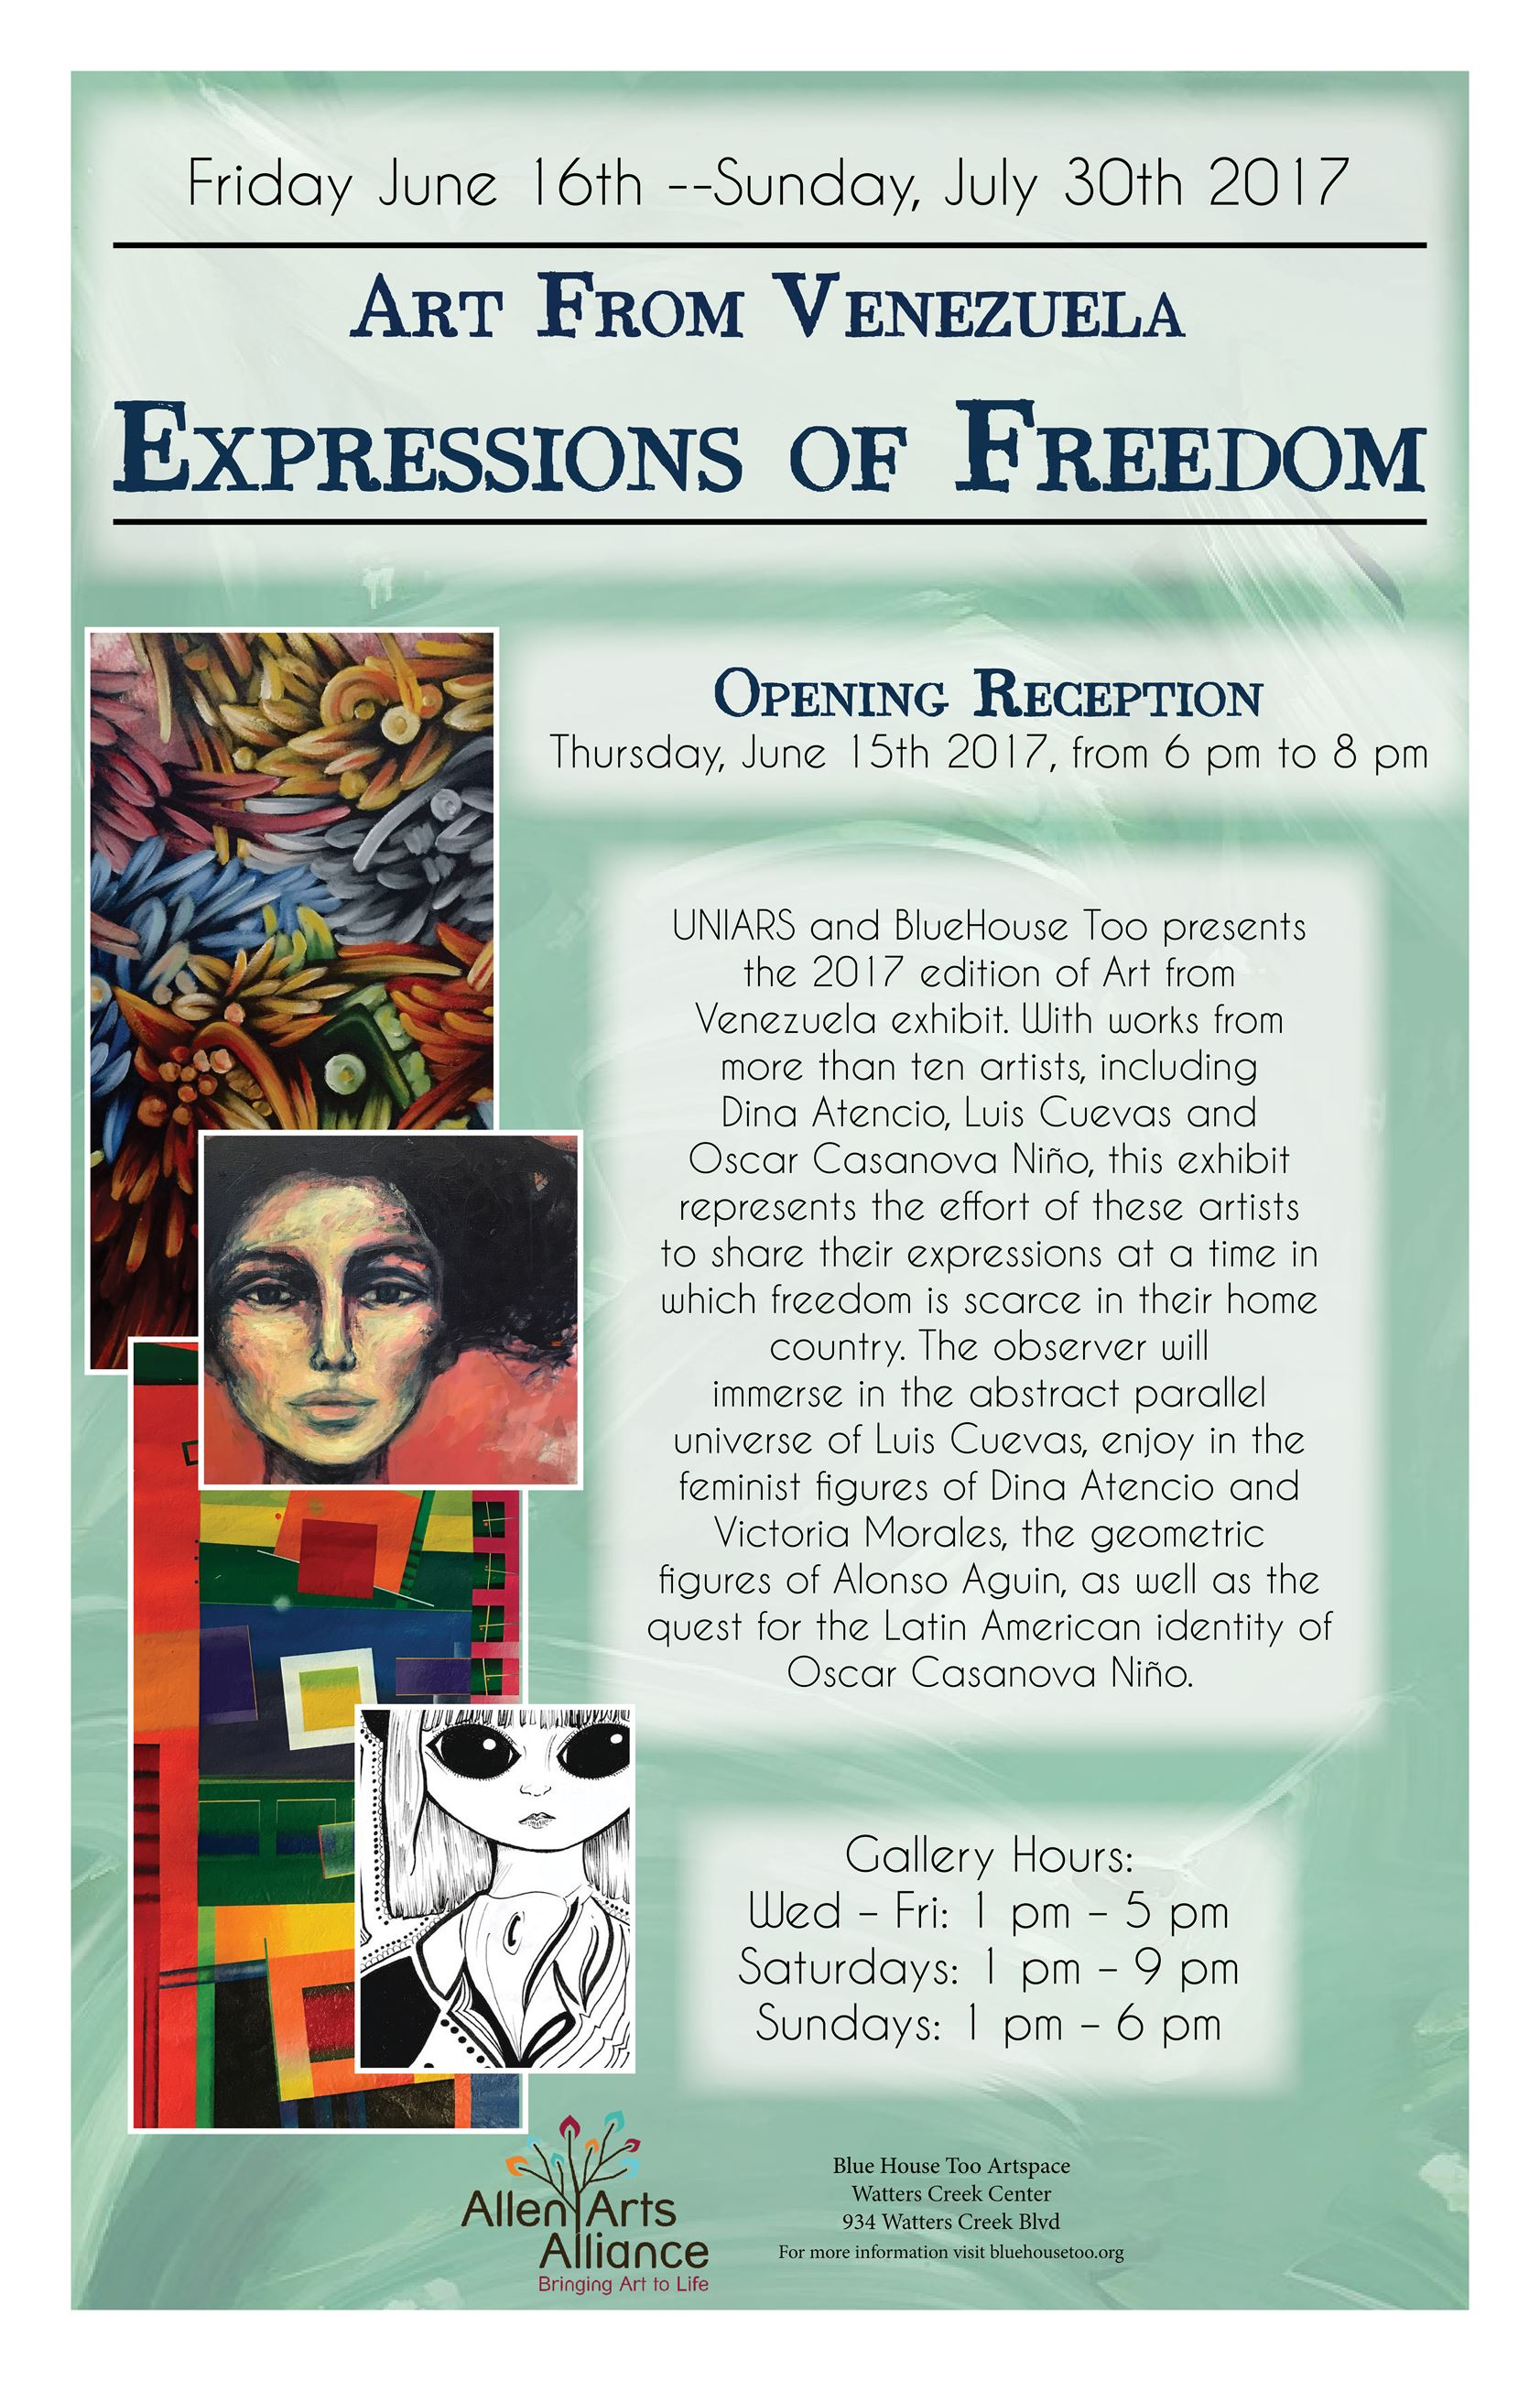 Art from Venezuela, Expressions of Freedom Exhibit